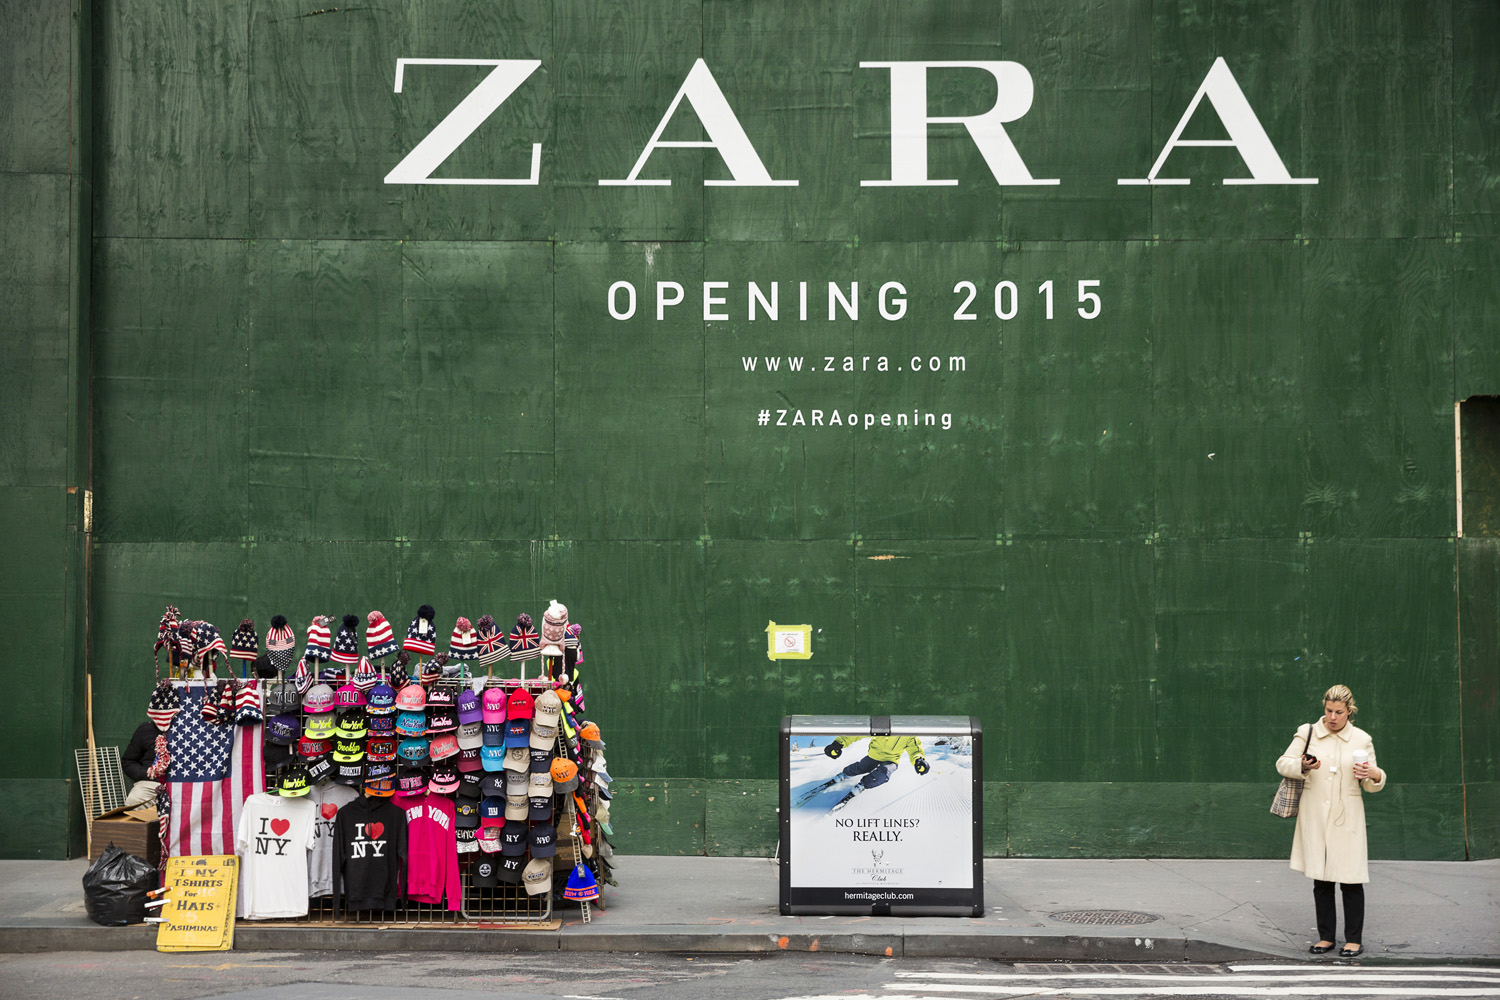 A woman checks her phone next to the construction site of a new Zara store in downtown Manhattan, New York, Dec 17, 2014.